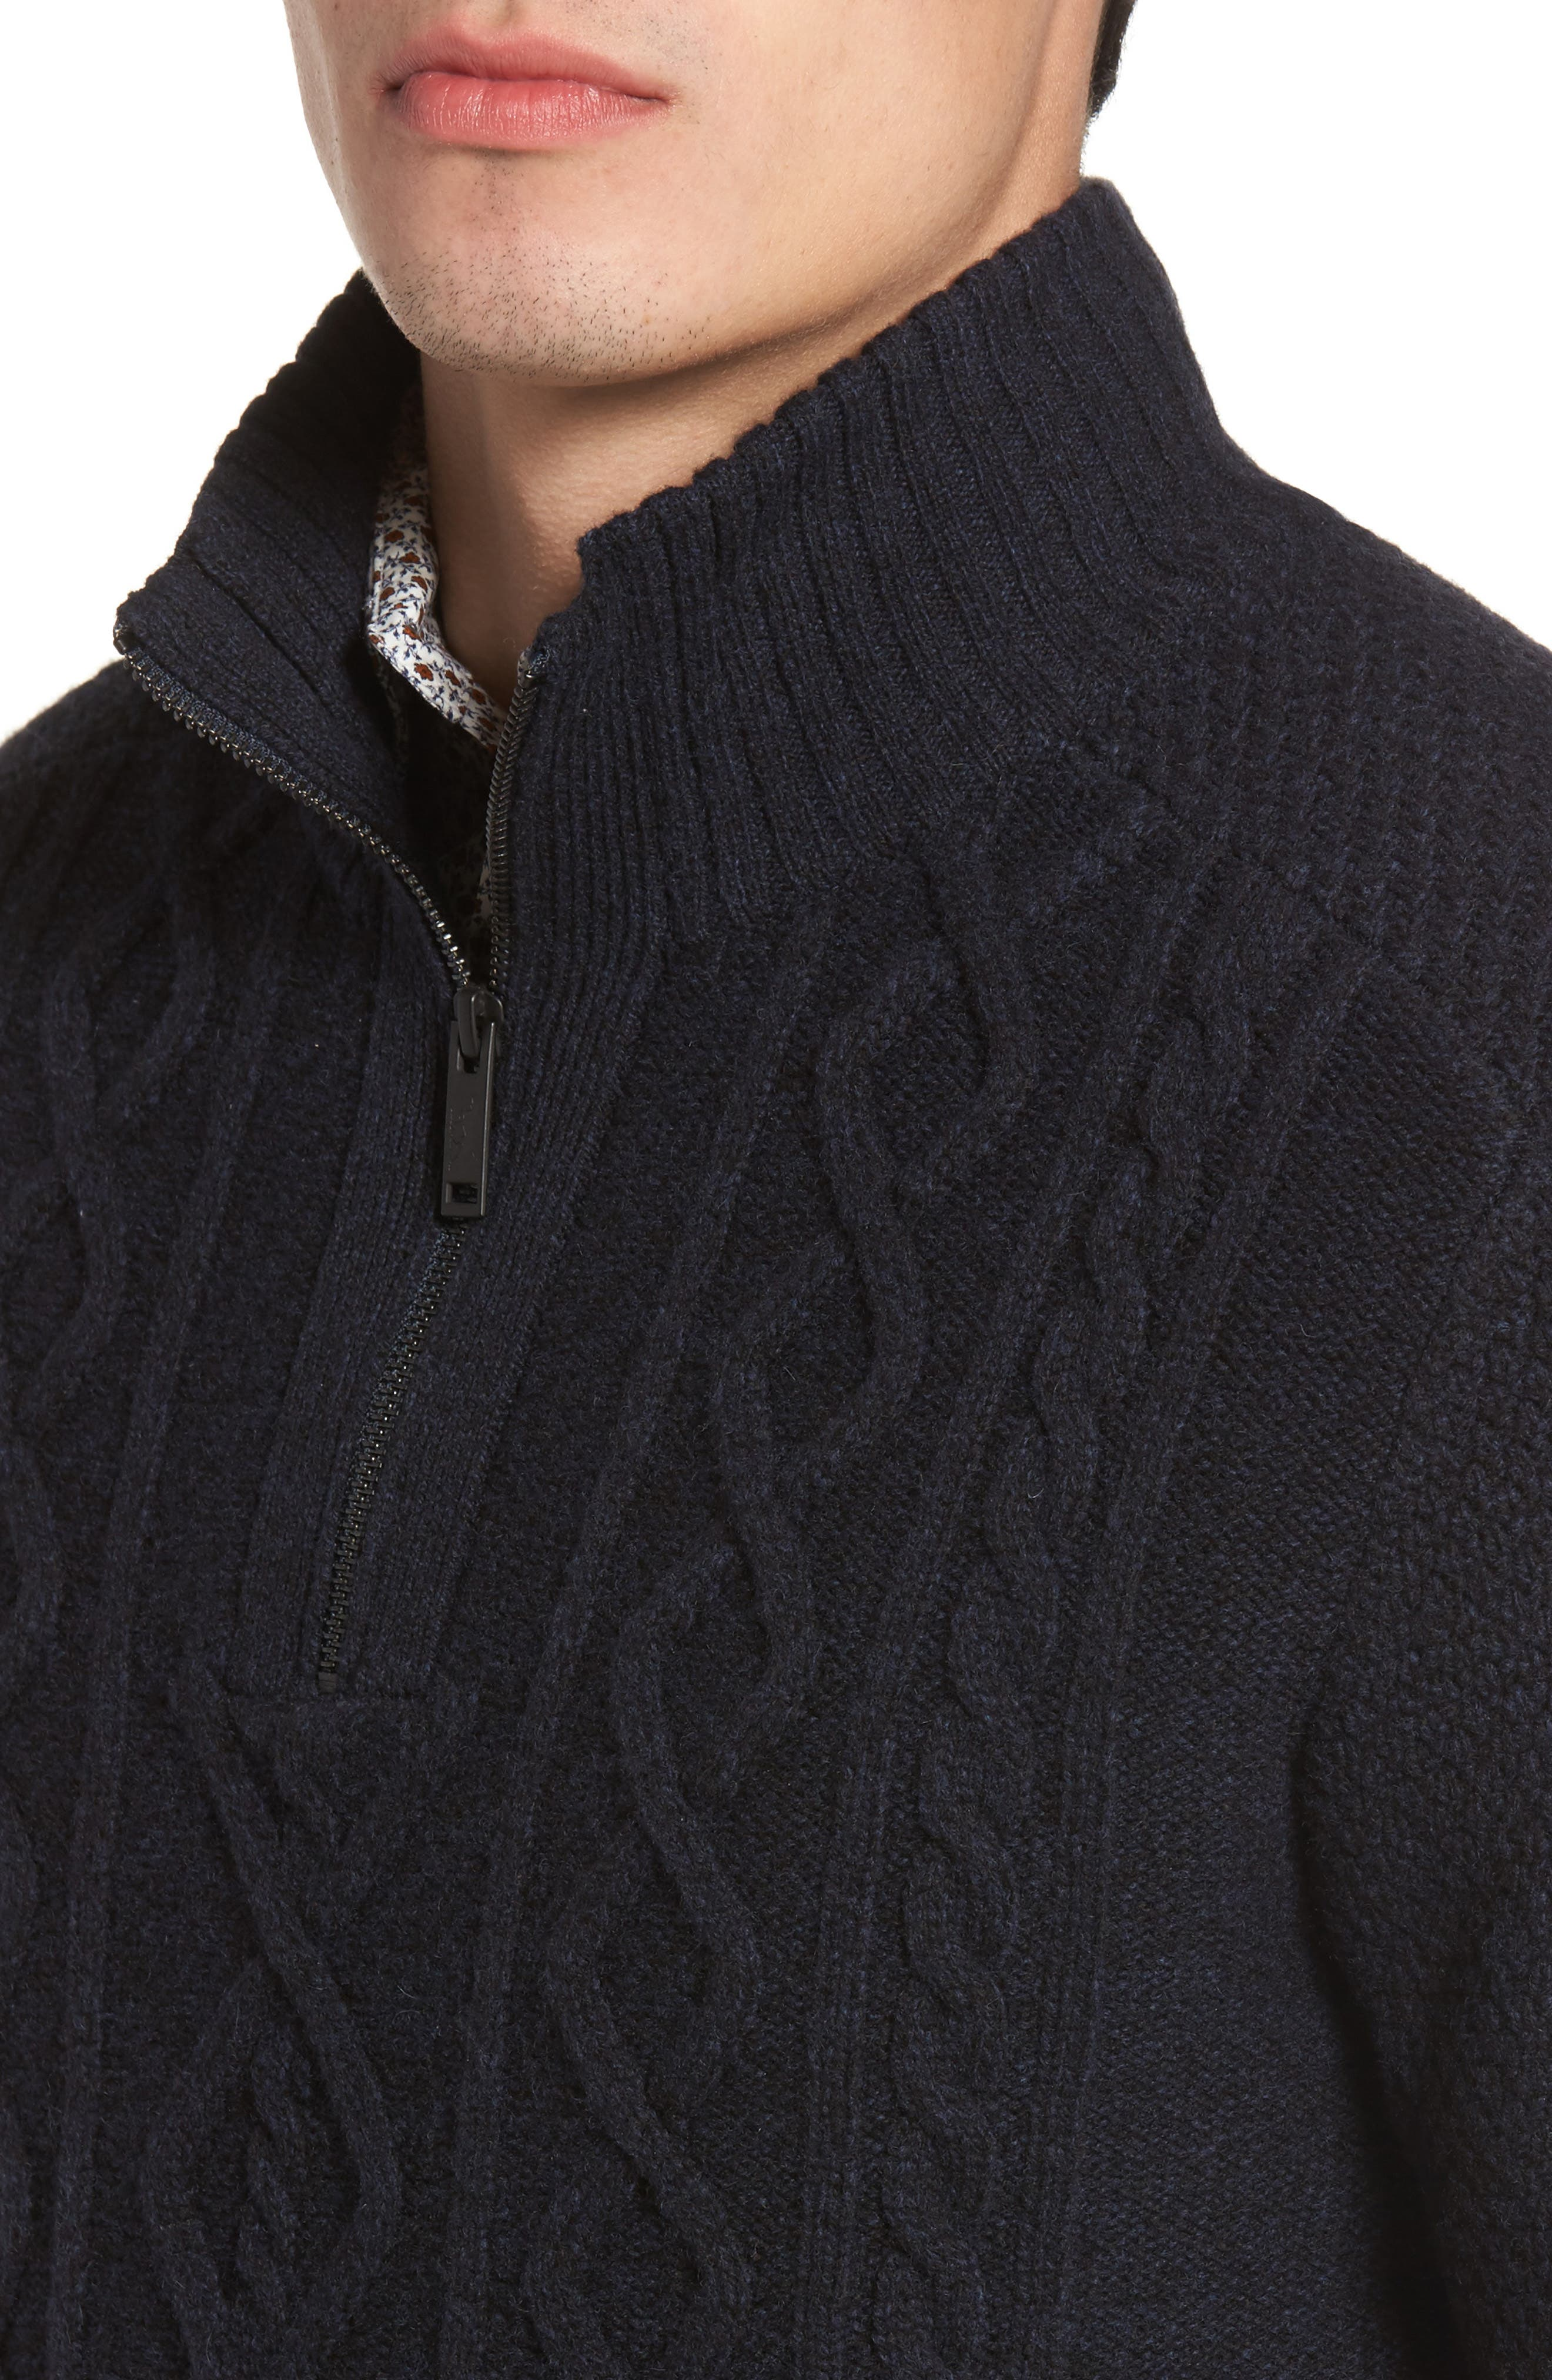 Cape Scoresby Wool Sweater,                             Alternate thumbnail 12, color,